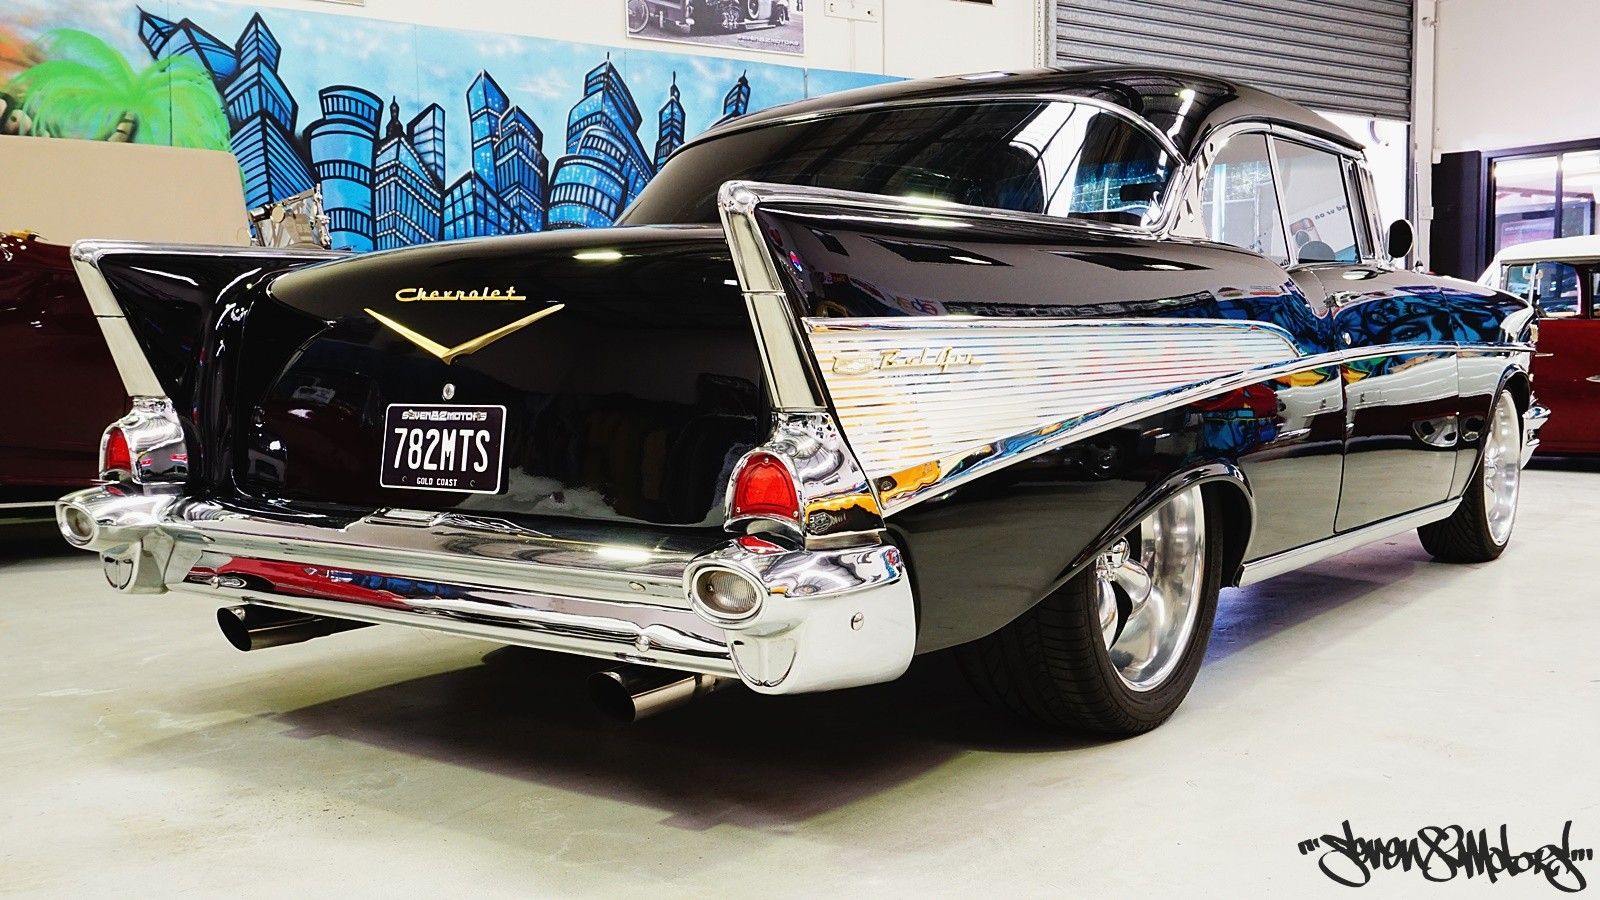 Sold 1957 Chevy Belair Sports Coupe For Sale Seven82motors Bel Air Front Suspension It Is The Responsibility Of Buyer To Have Thoroughly Inspected Vehicle And Satisfied Himself Or Herself As Condition Value